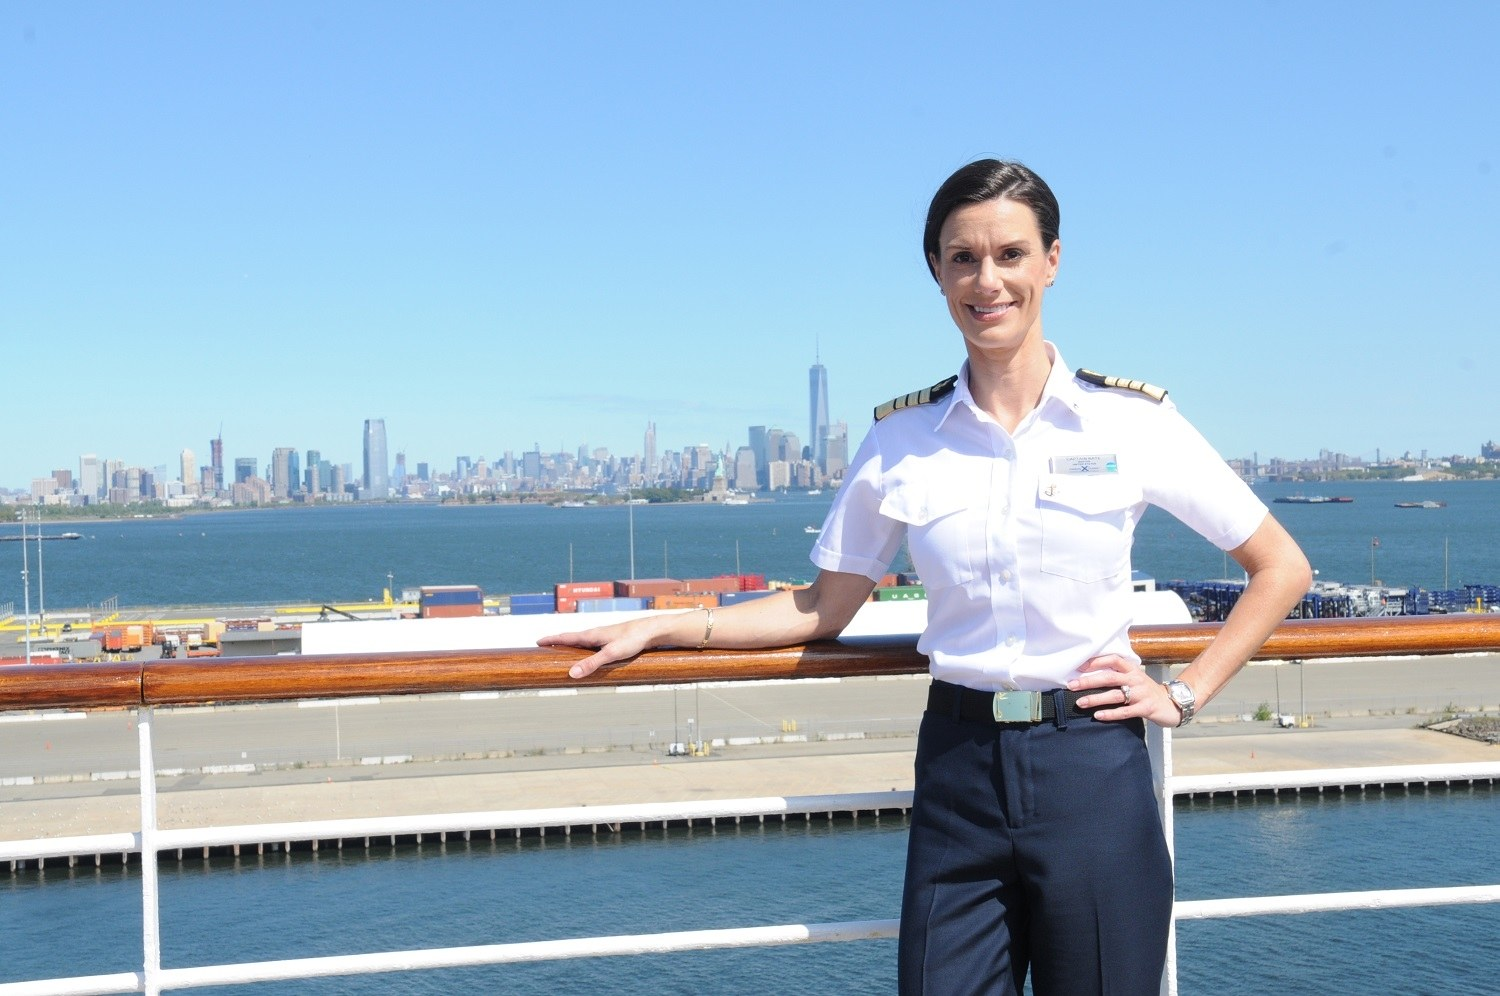 Captain-Kate-McCue-cr-Celebrity Cruises